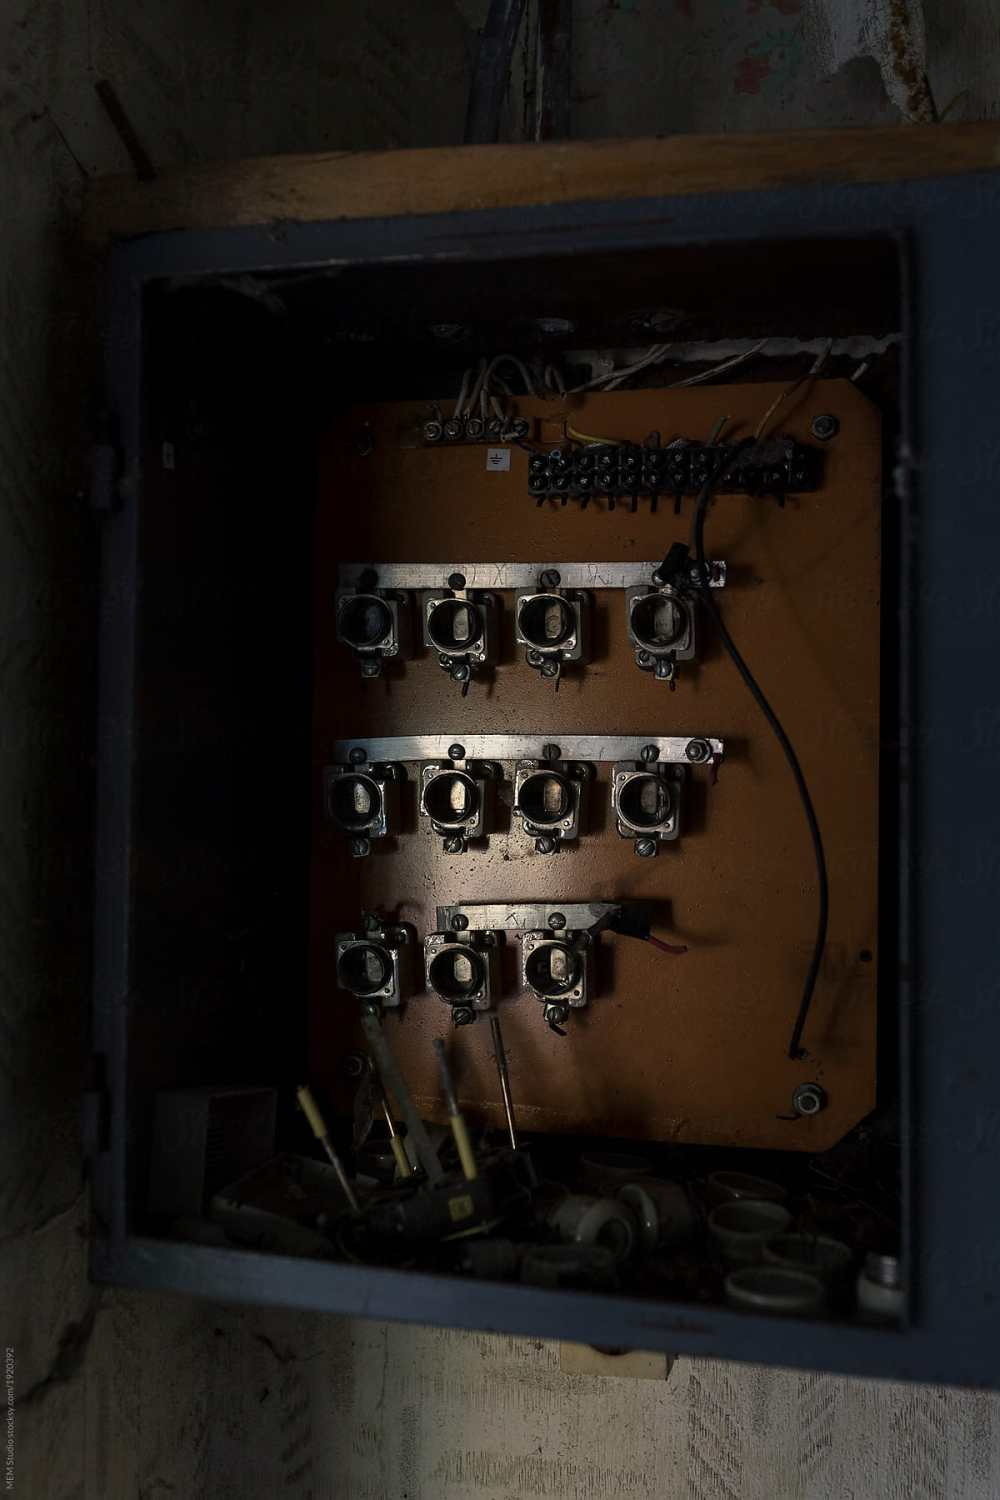 medium resolution of old damaged fuse box by mem studio for stocksy united